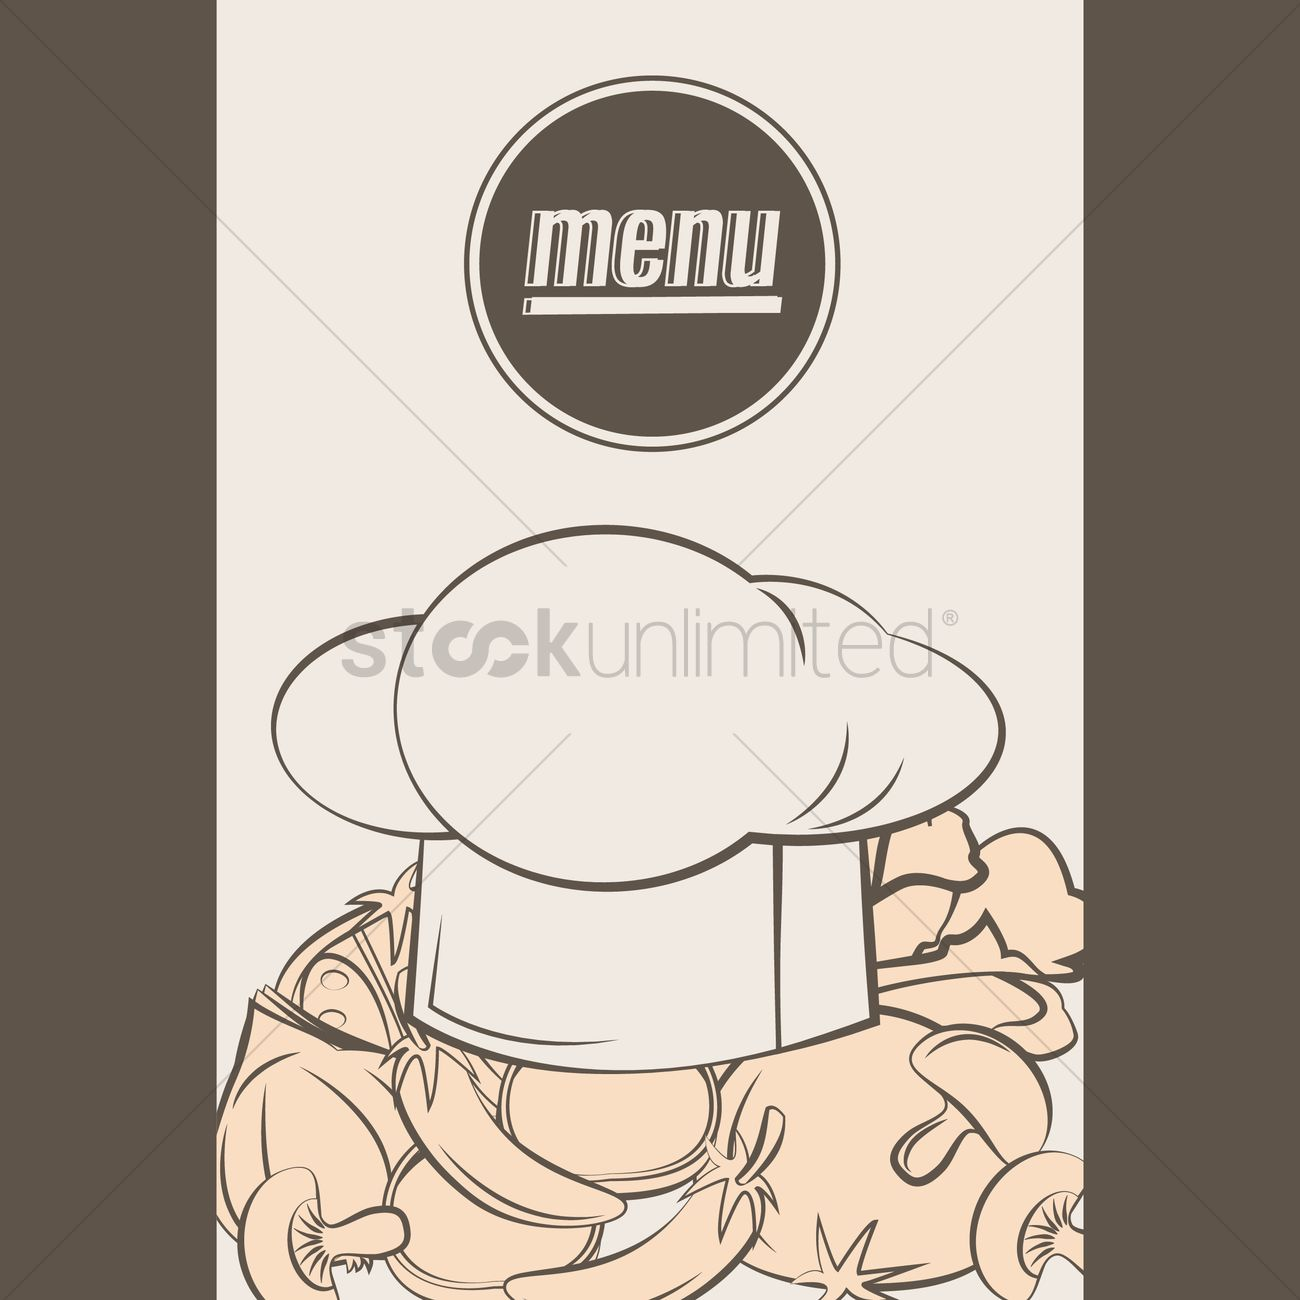 Chef hat Vector Image - 1616336 | StockUnlimited